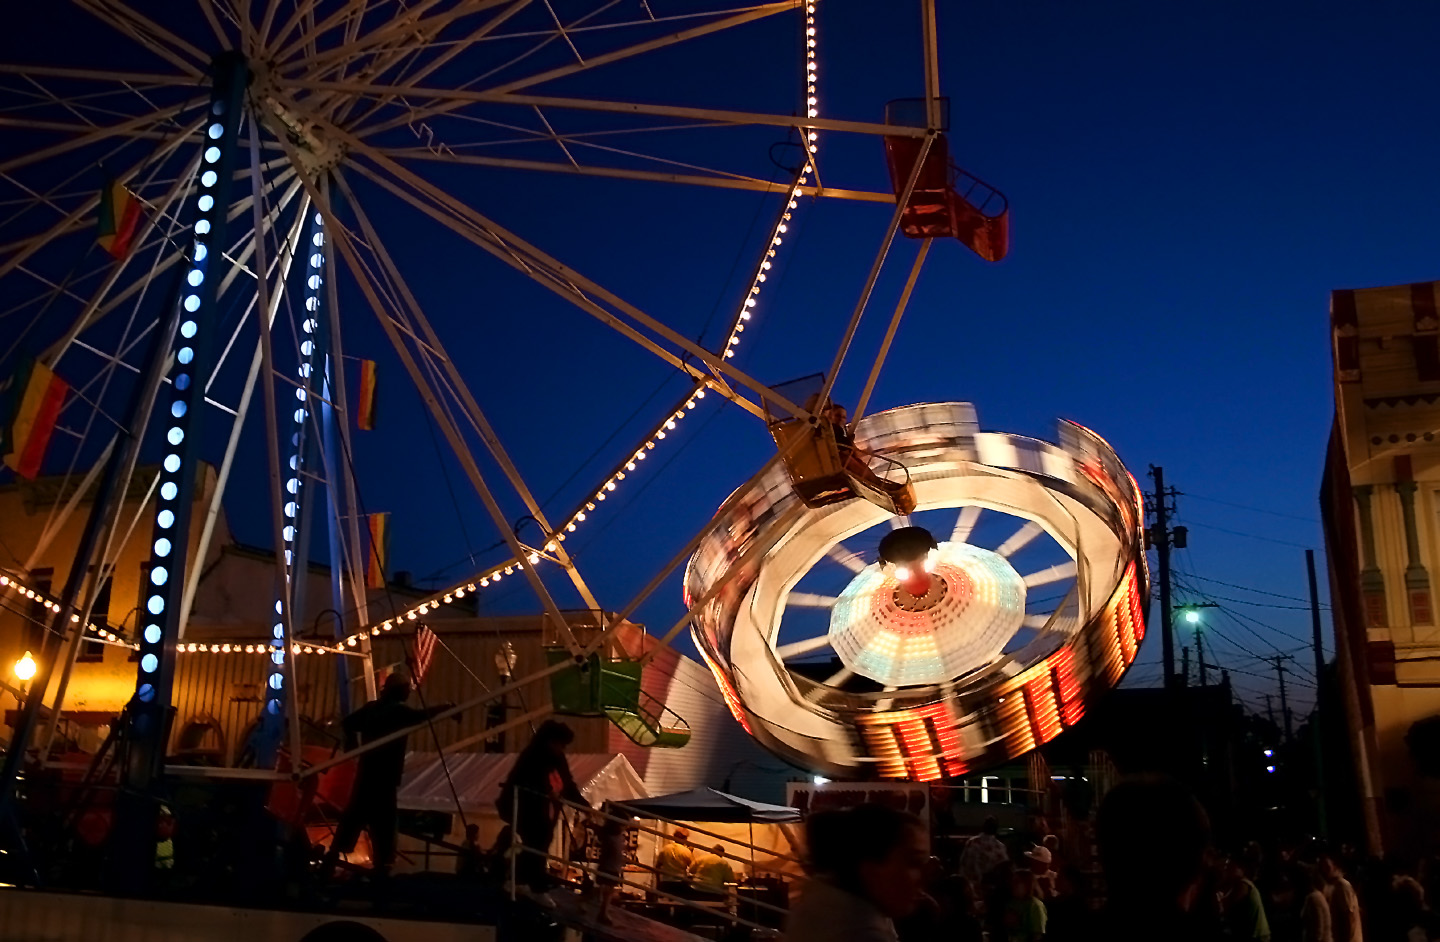 Each June, Knightstown hosts its Jubilee Days celebration, which features a carnival and parade. The summer night is punctuated by the midway's thumping music and flashing lights. Many a wide-eyed kid circled the attractions, nibbling cotton candy while deciding which ride to try next.